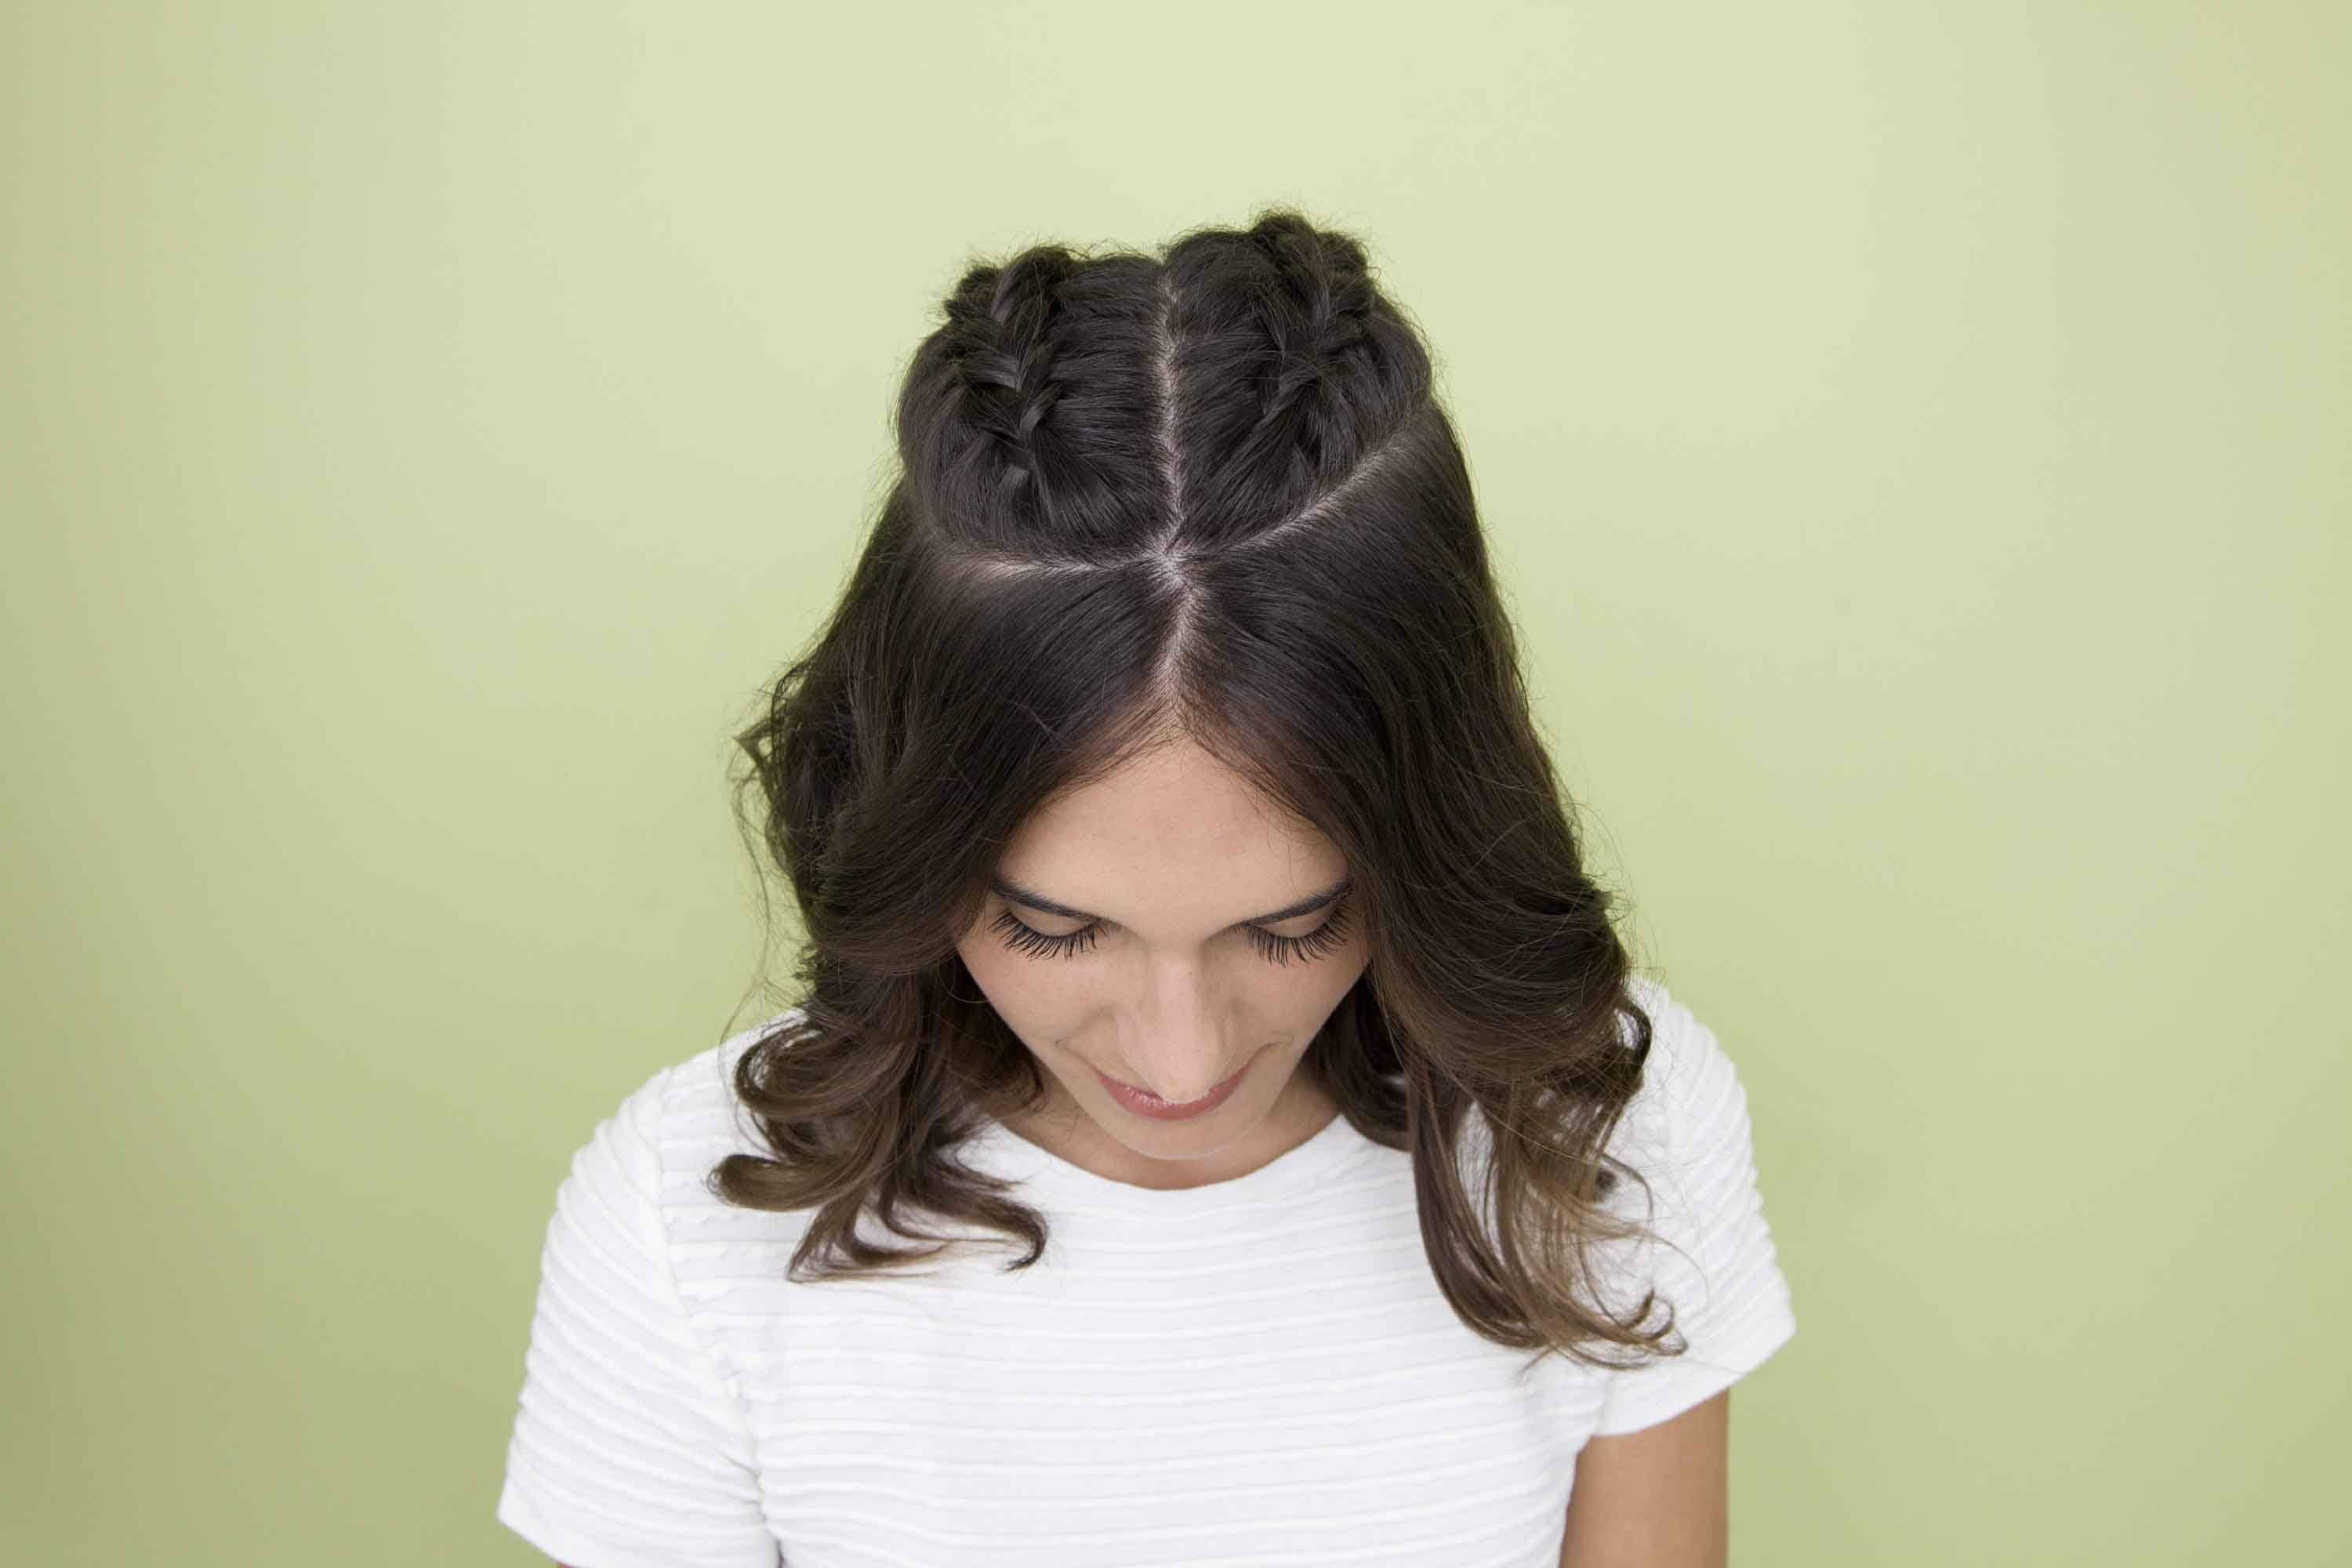 Gym hairstyles for short hair: Close-up shot from above of a brunette with curly mid-length hair styled in half-up half-down double Dutch braids, wearing a white t-shirt against a green background